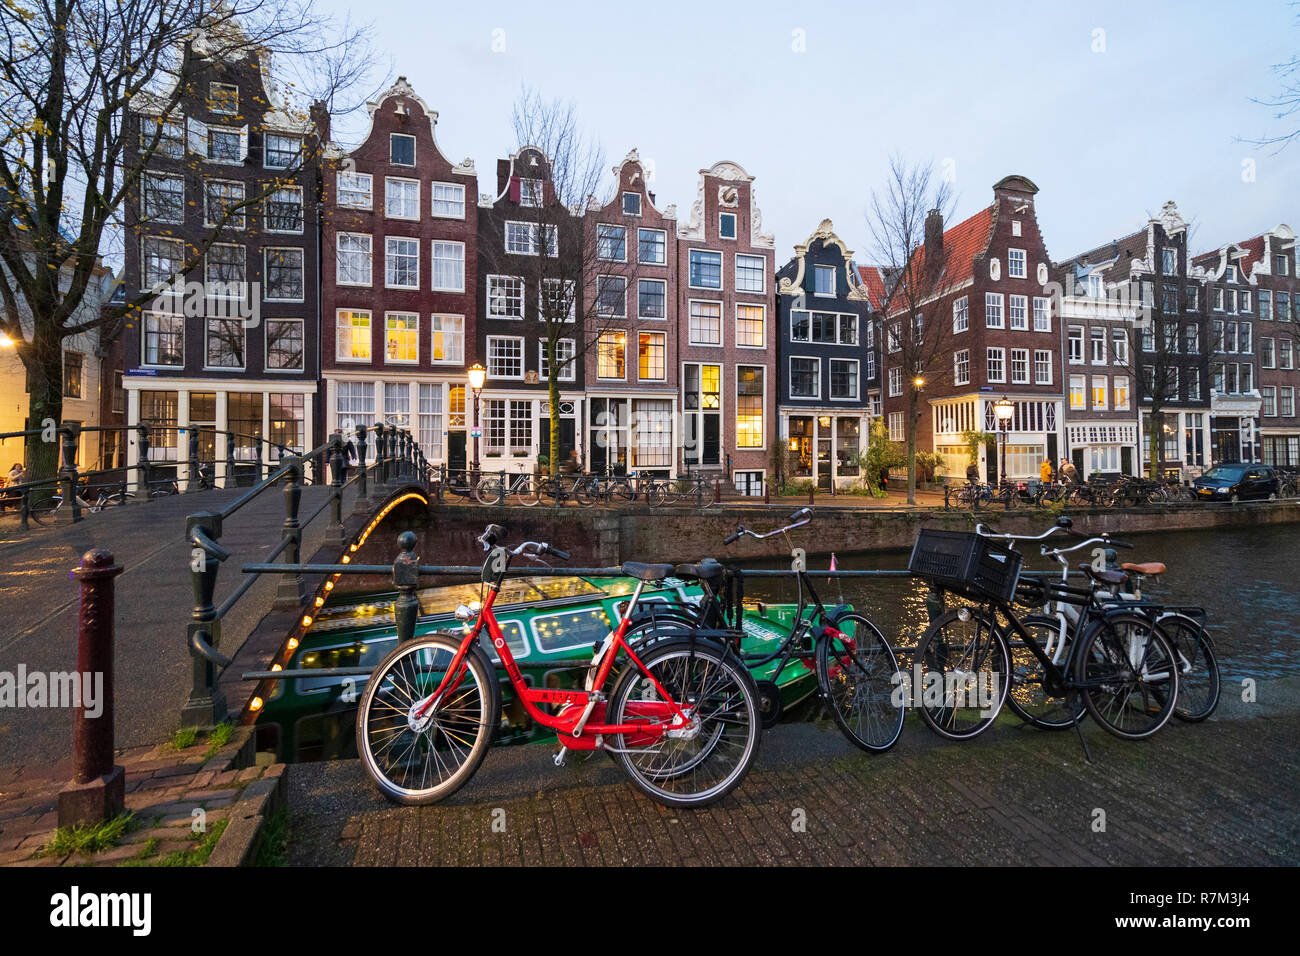 Evening View Of Old Dutch Houses Beside Canal In Amsterdam